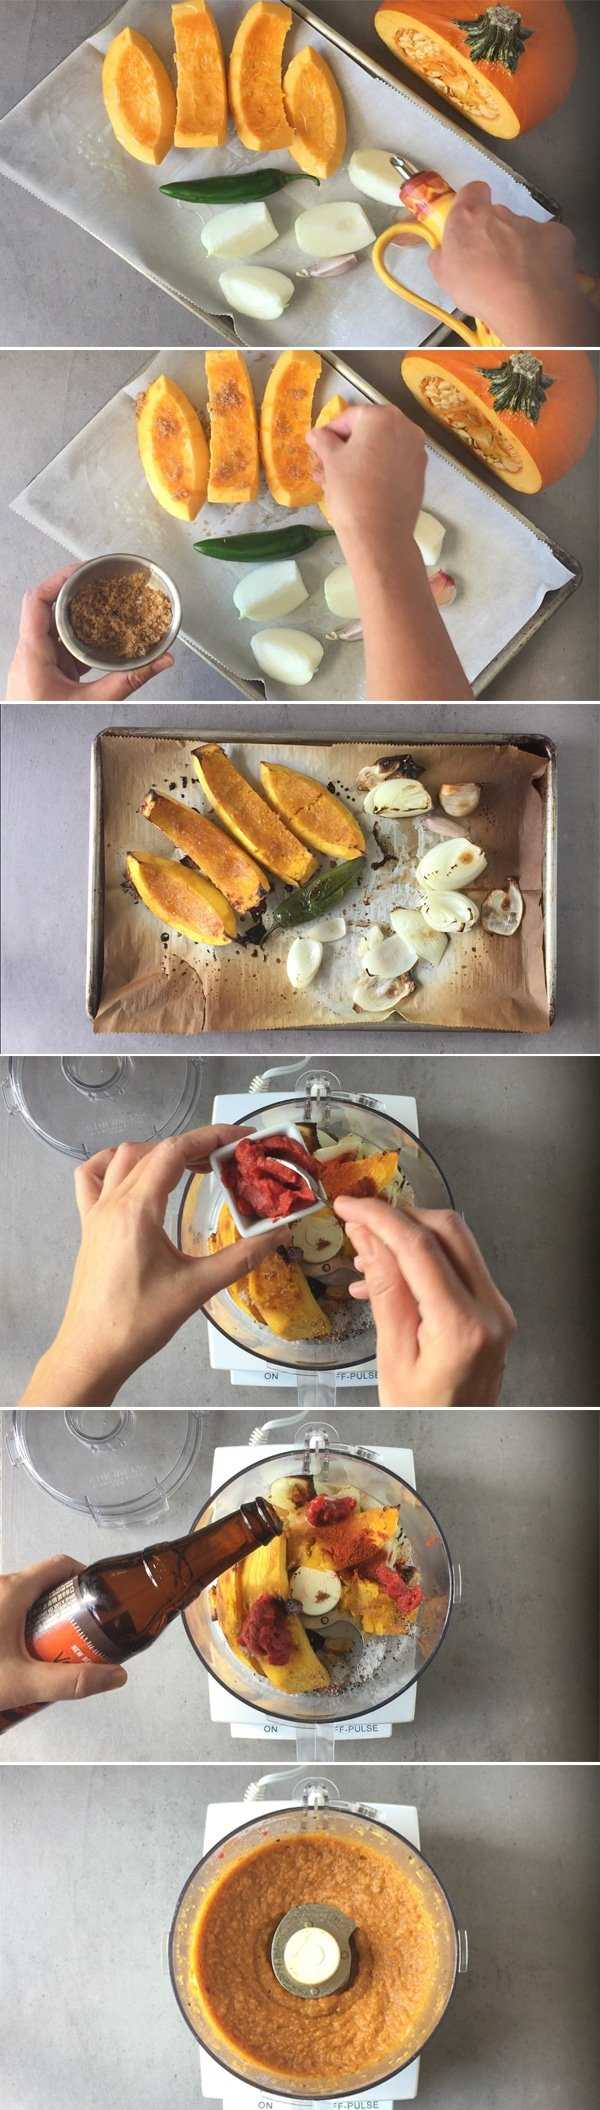 Roasted pumpkin dip step by step actions image grid